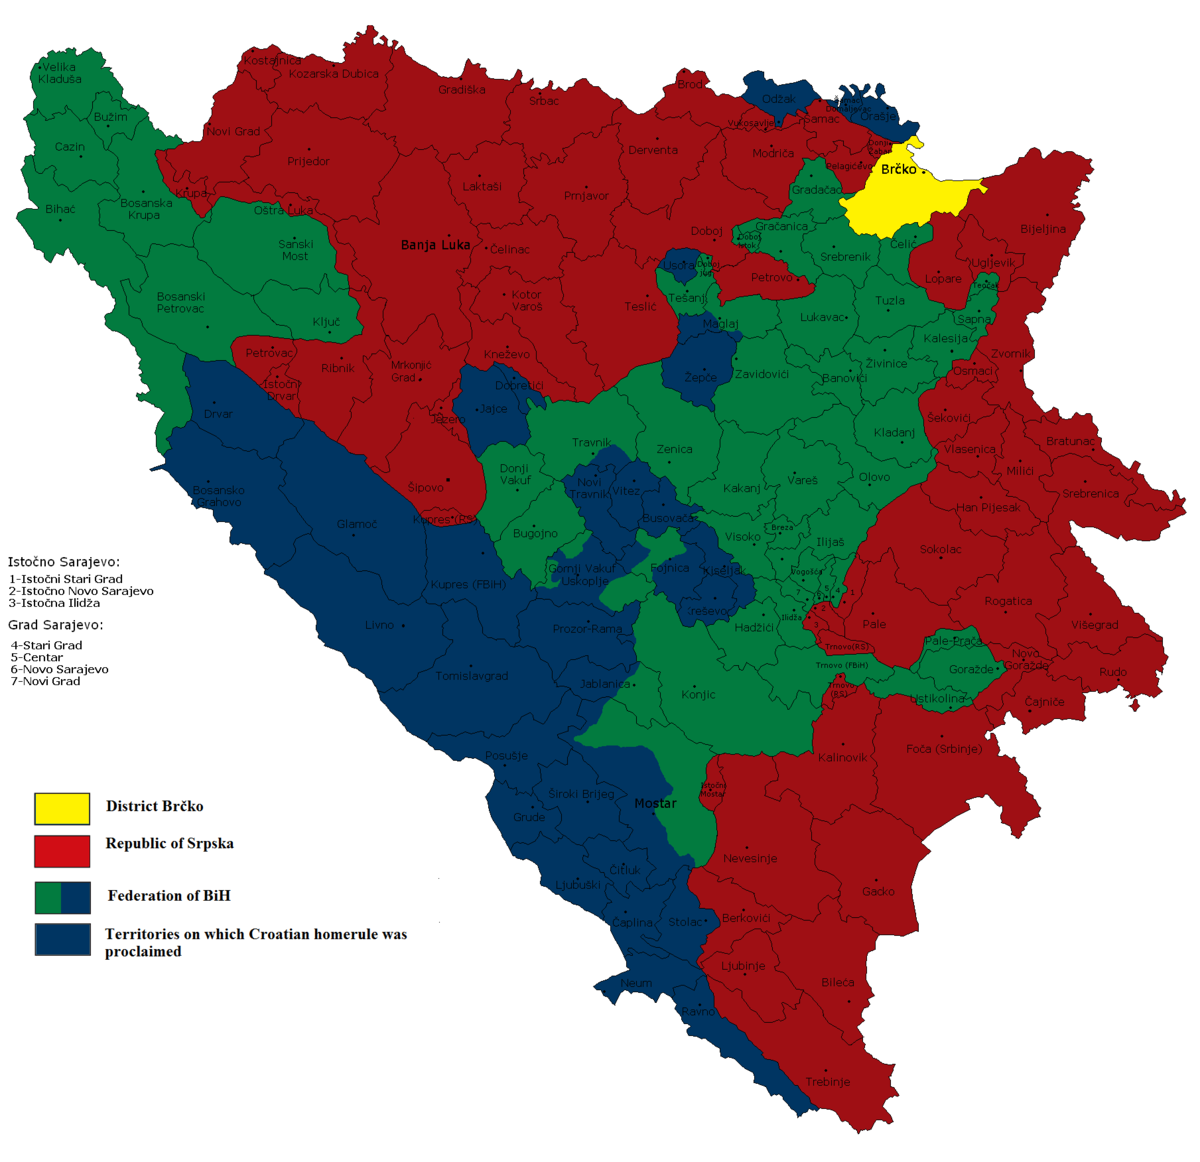 Croat entity in Bosnia and Herzegovina - Wikipedia